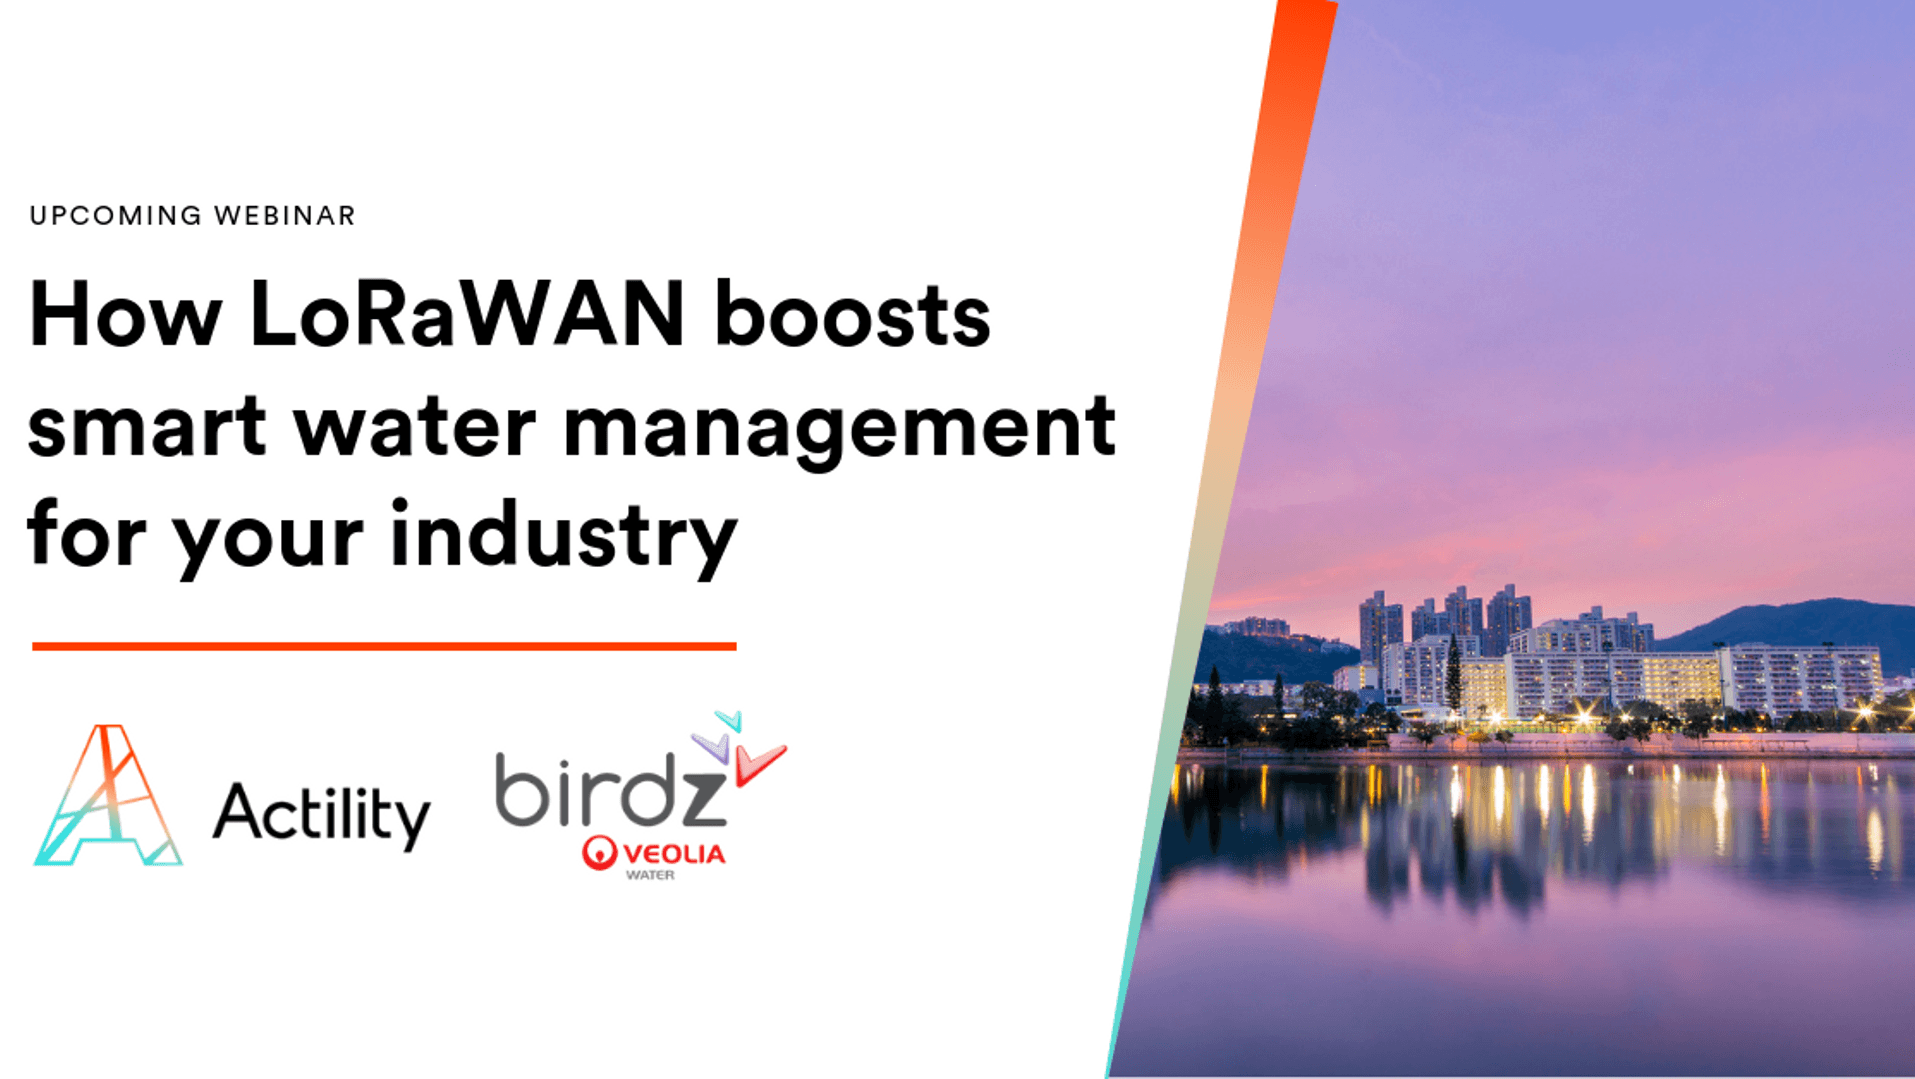 Webinar: How LoRaWAN boosts smart water management for your industry